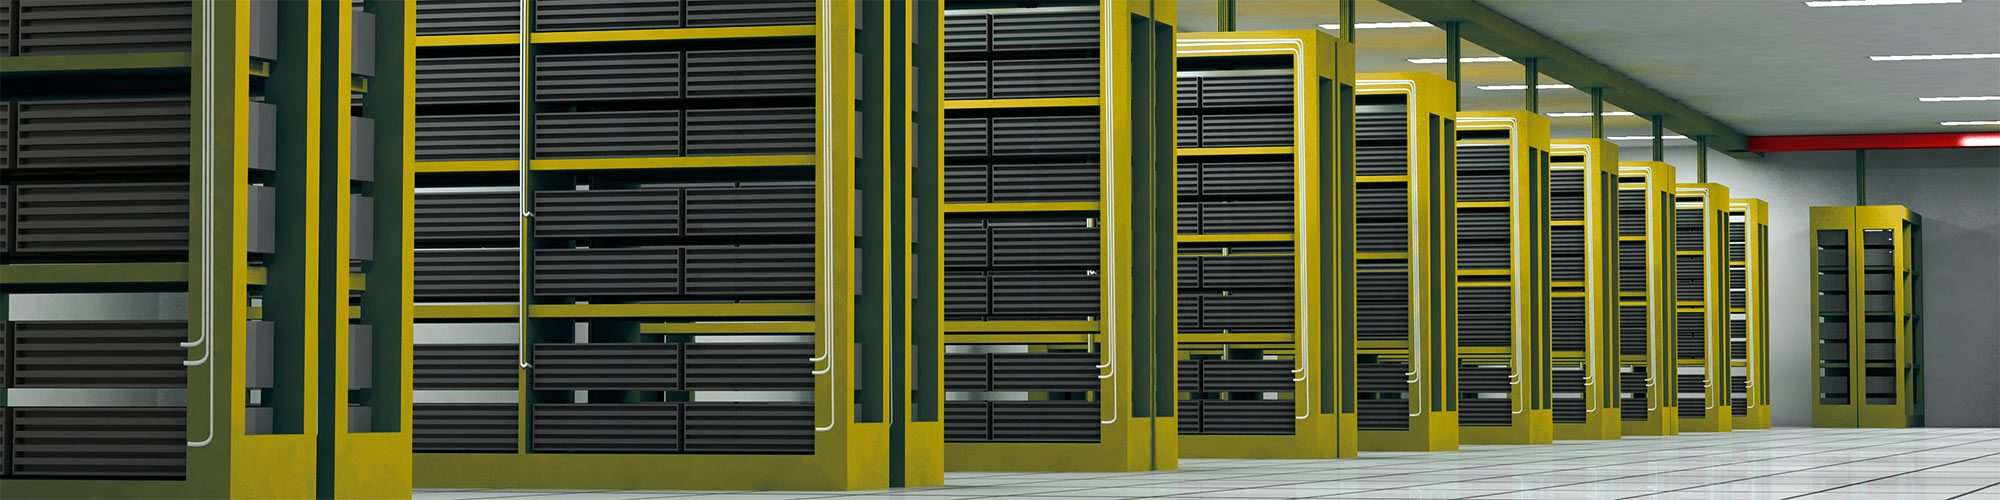 Ensuring that the power supply in data centres is safe